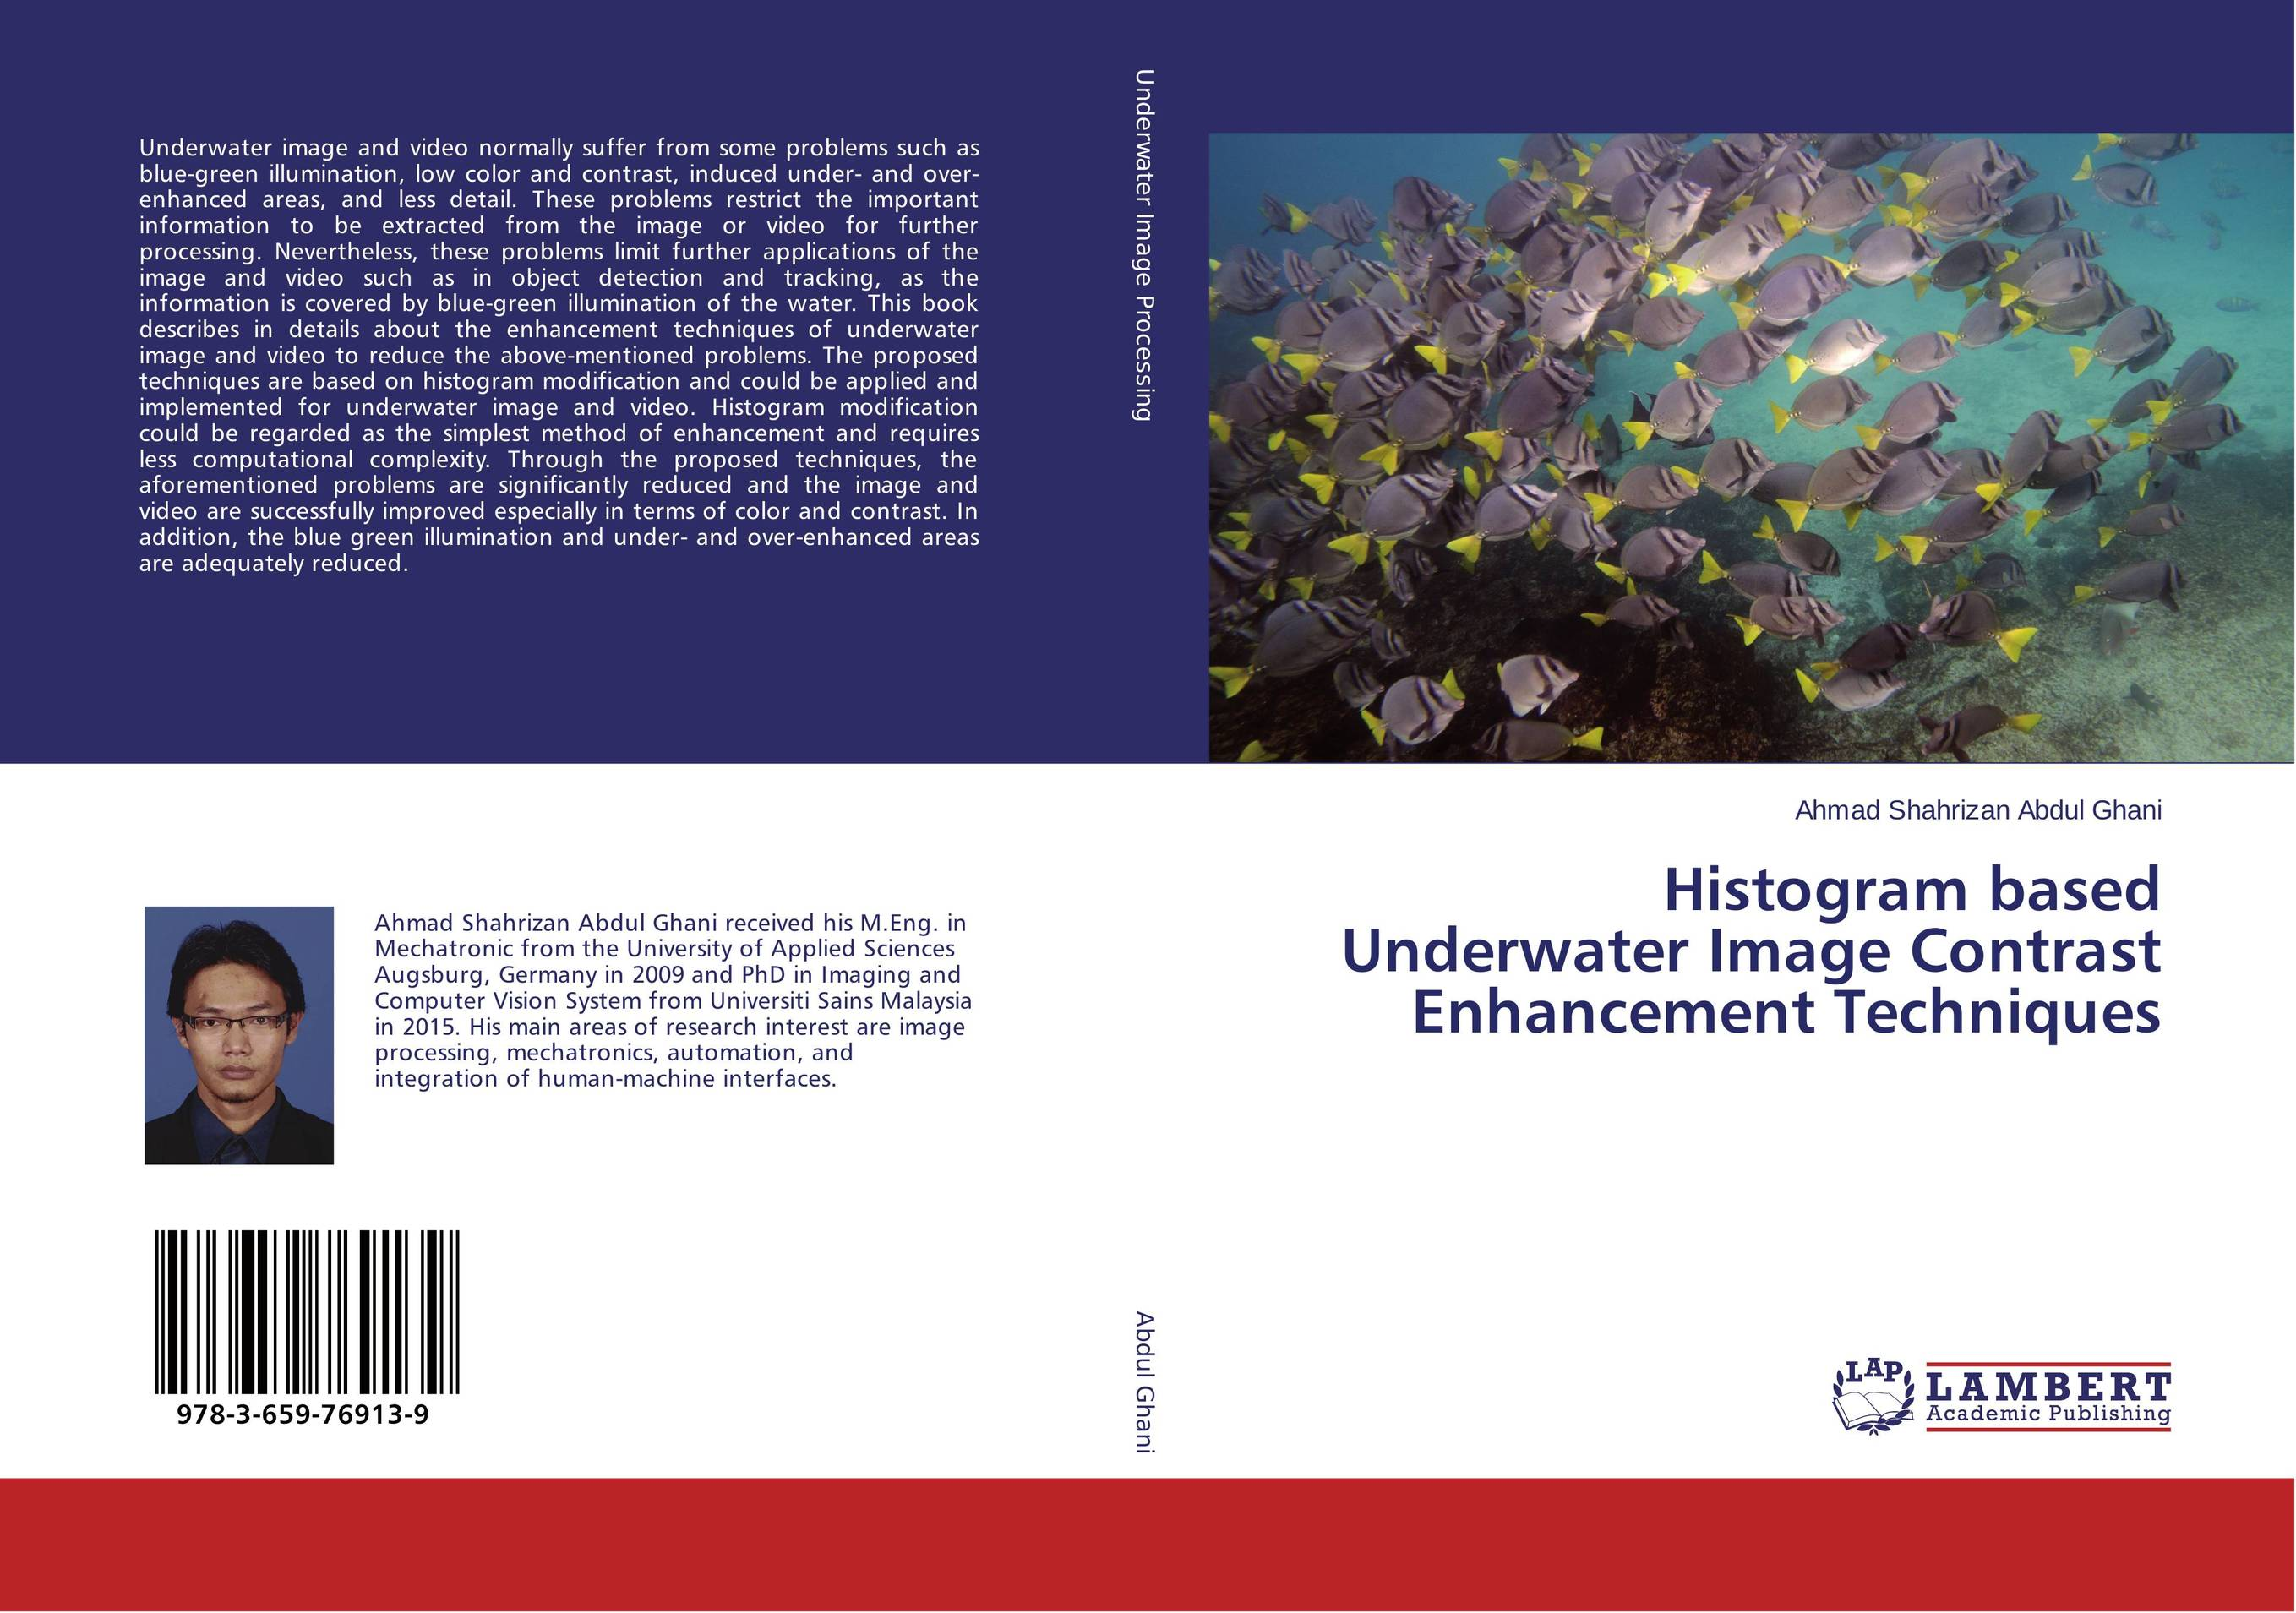 Histogram based Underwater Image Contrast Enhancement Techniques clustering and optimization based image segmentation techniques